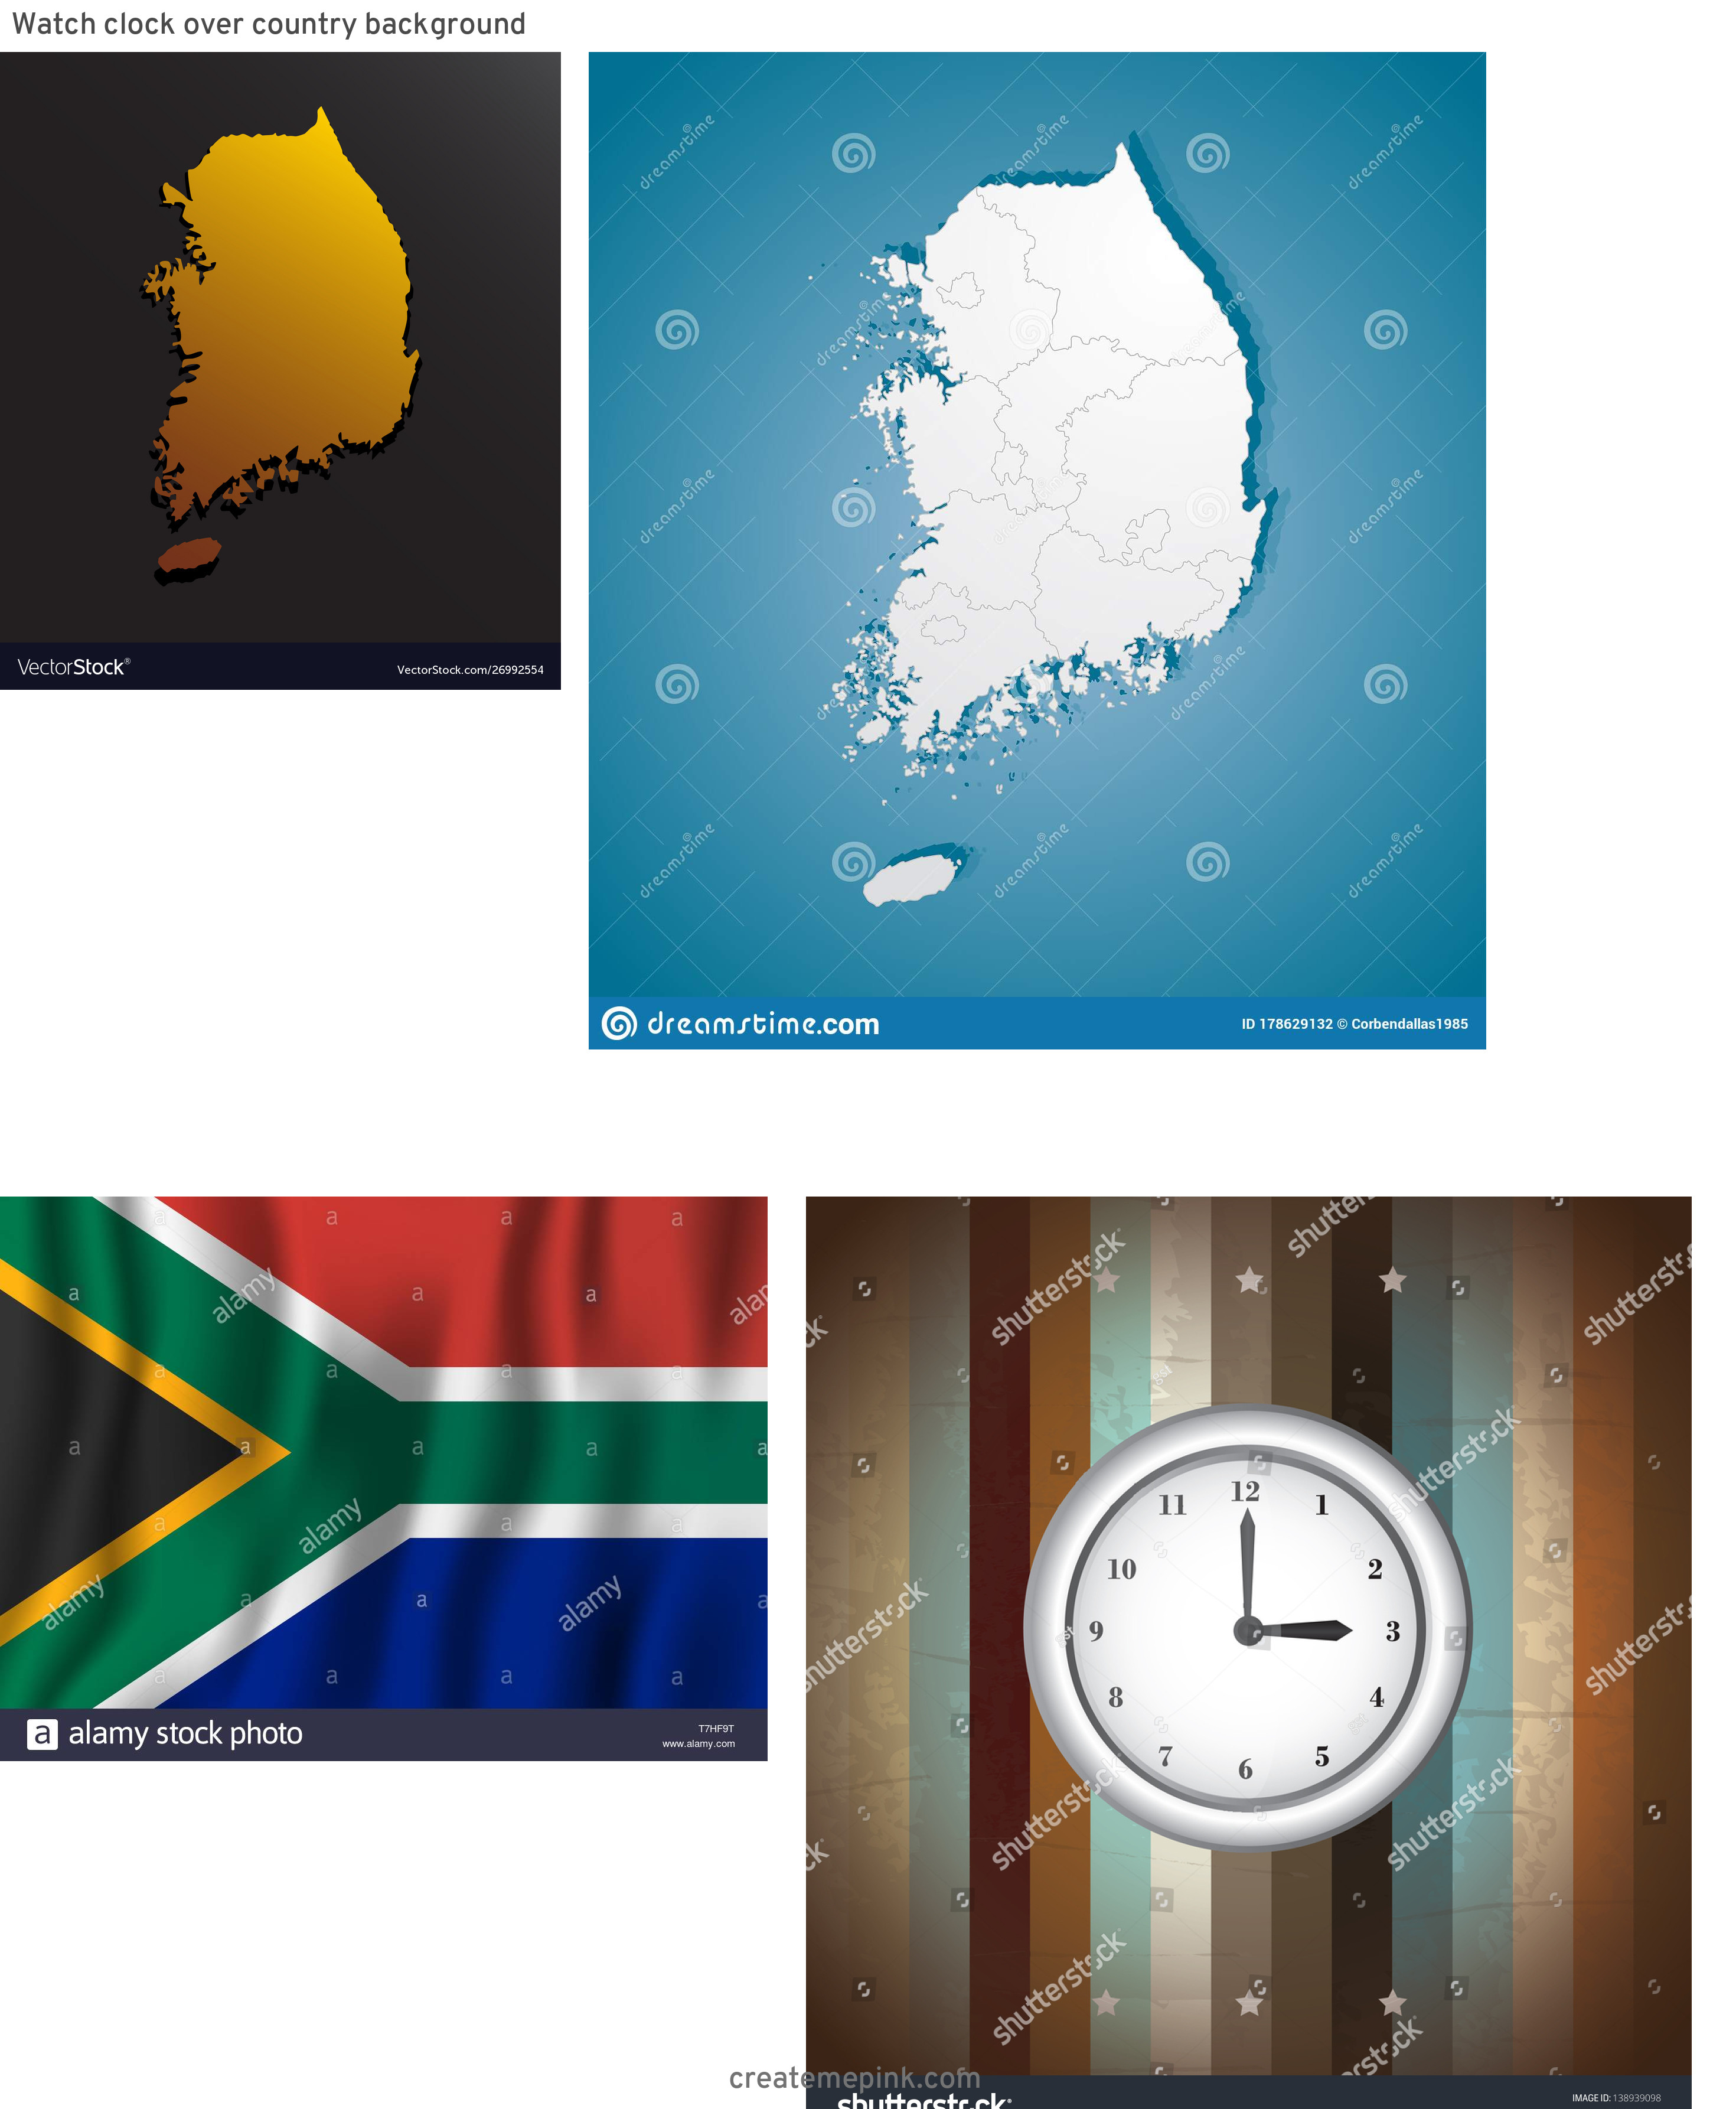 Country Background Vector: Watch Clock Over Country Background